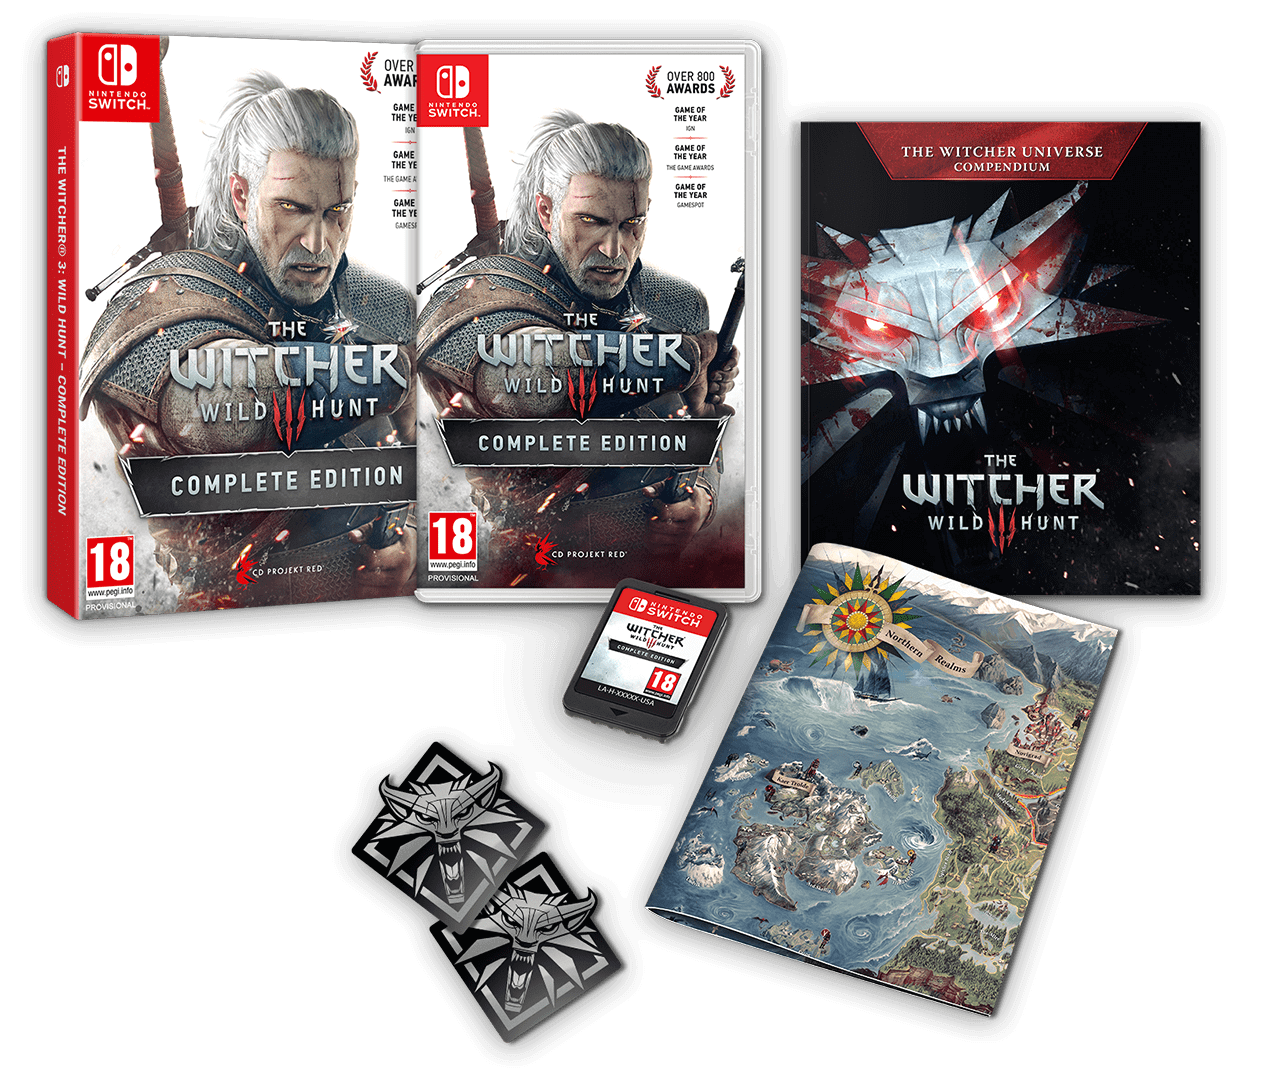 The Witcher 3: Wild Hunt is getting a Nintendo Switch port